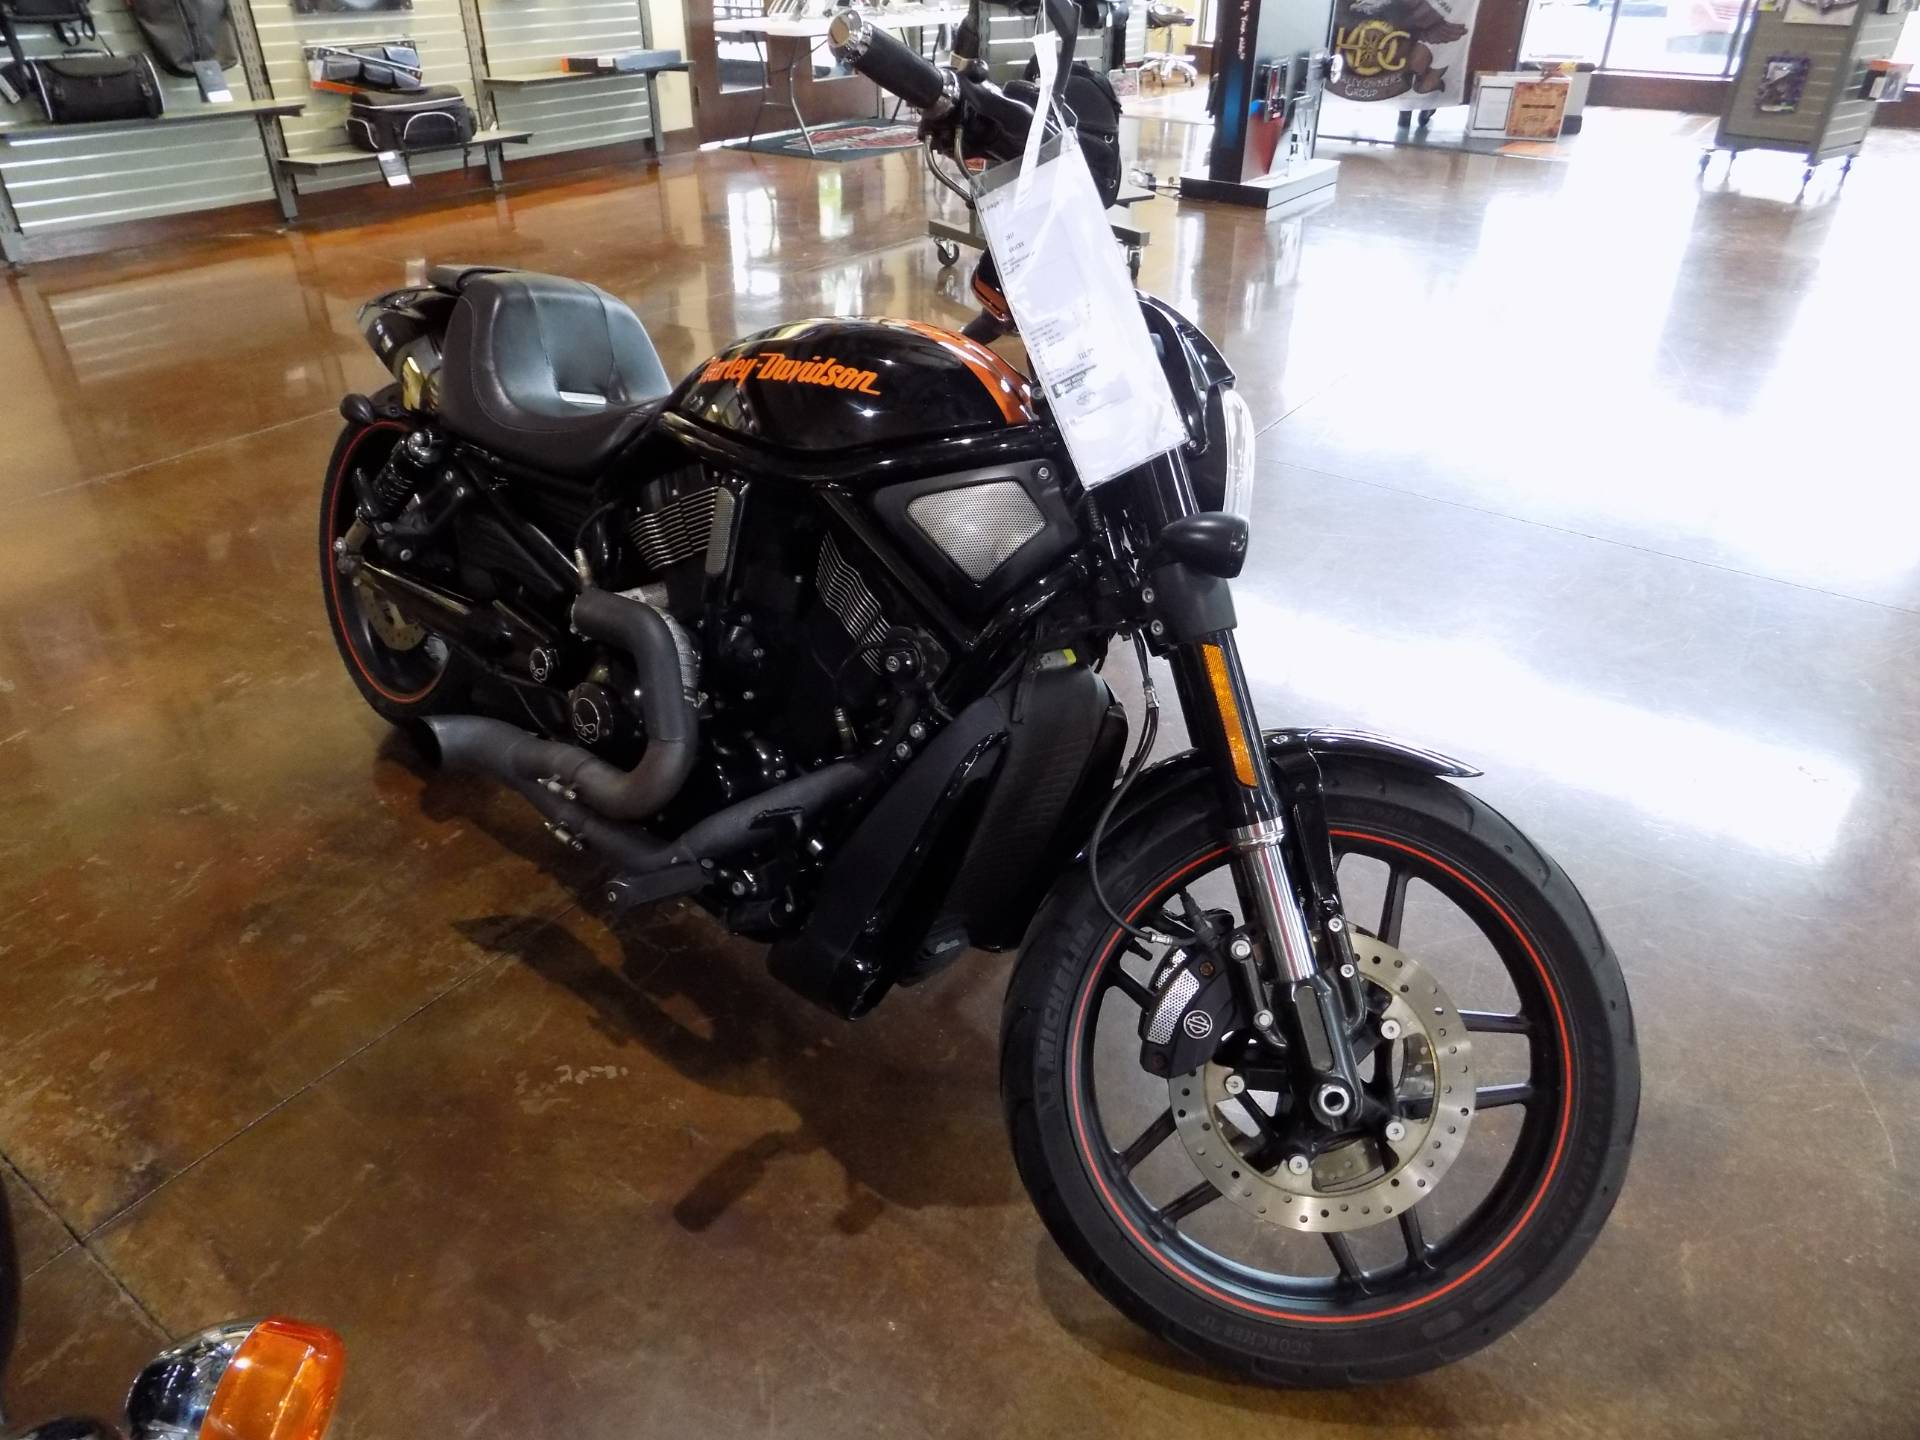 Used 2014 Harley Davidson Night Rod Special Black Motorcycles In Winchester Va N A